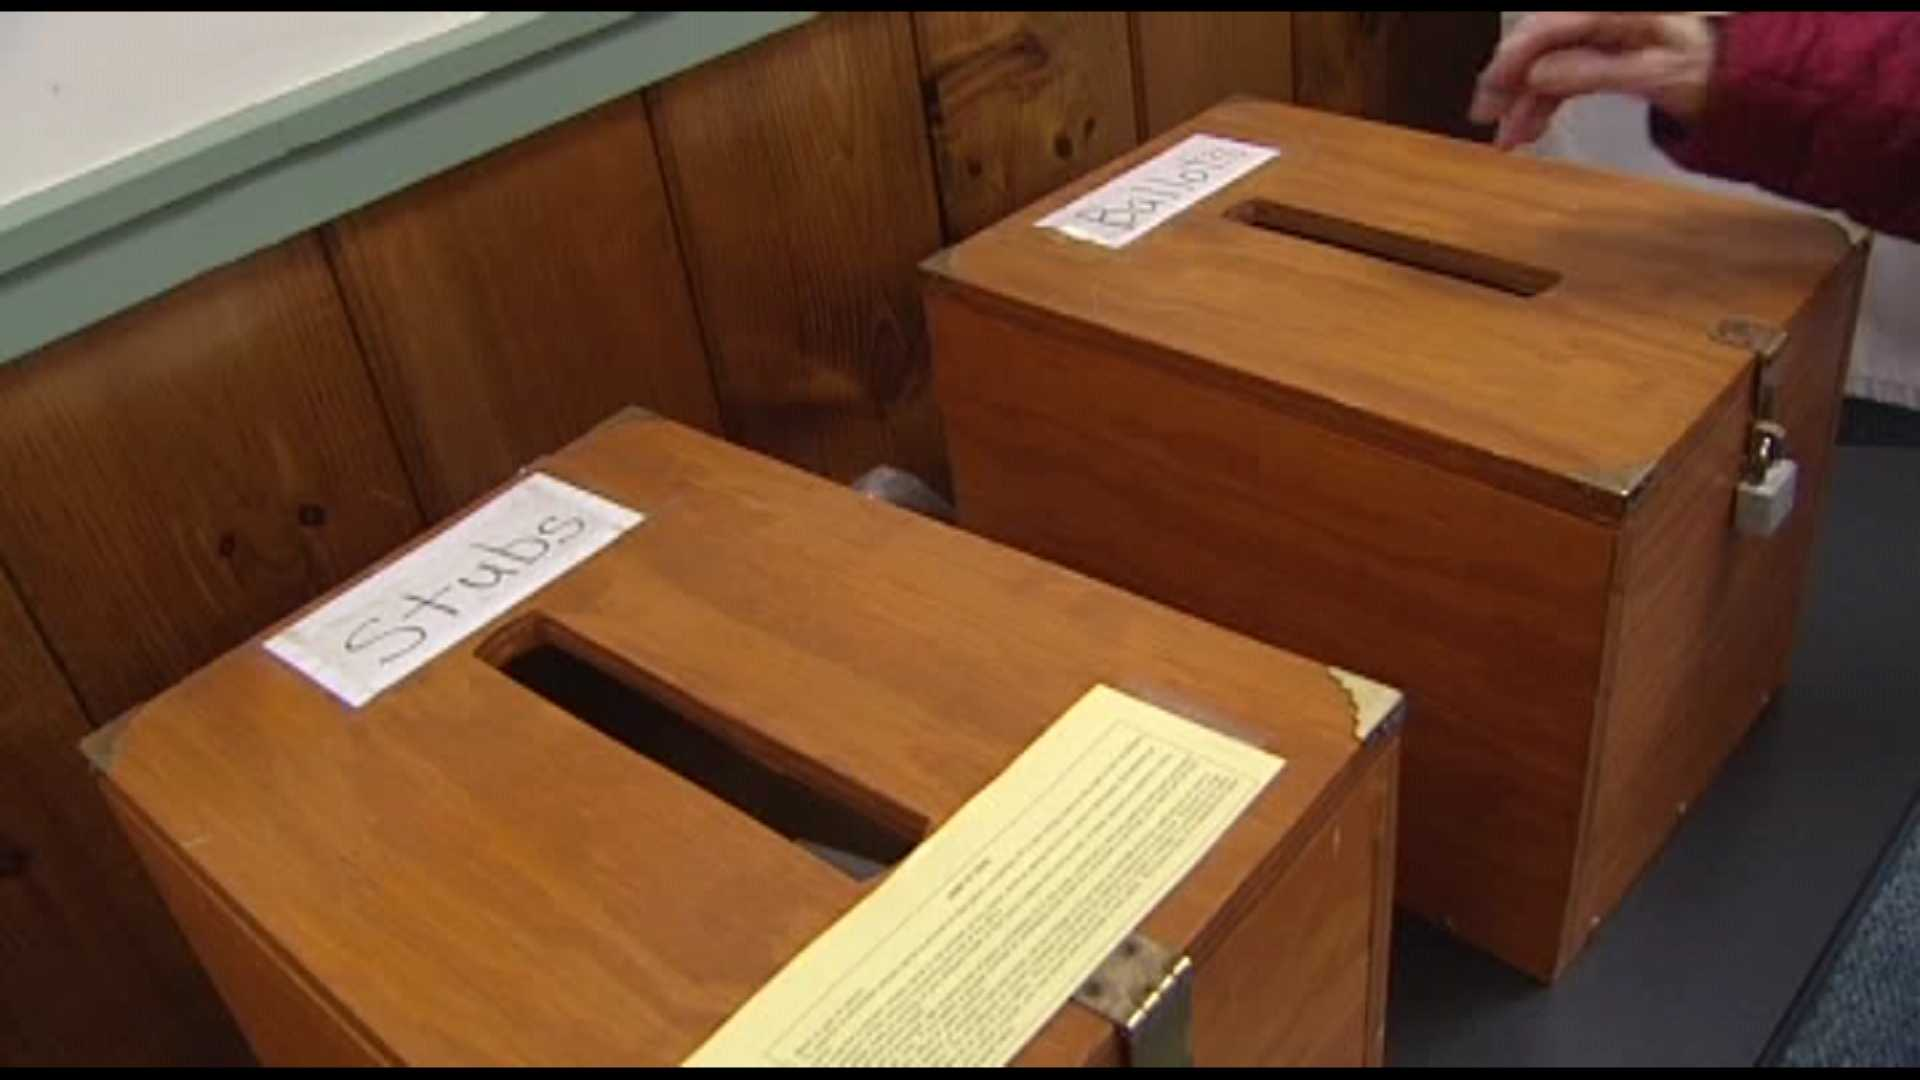 03-19-13 Champlain voters not to dissolve - img